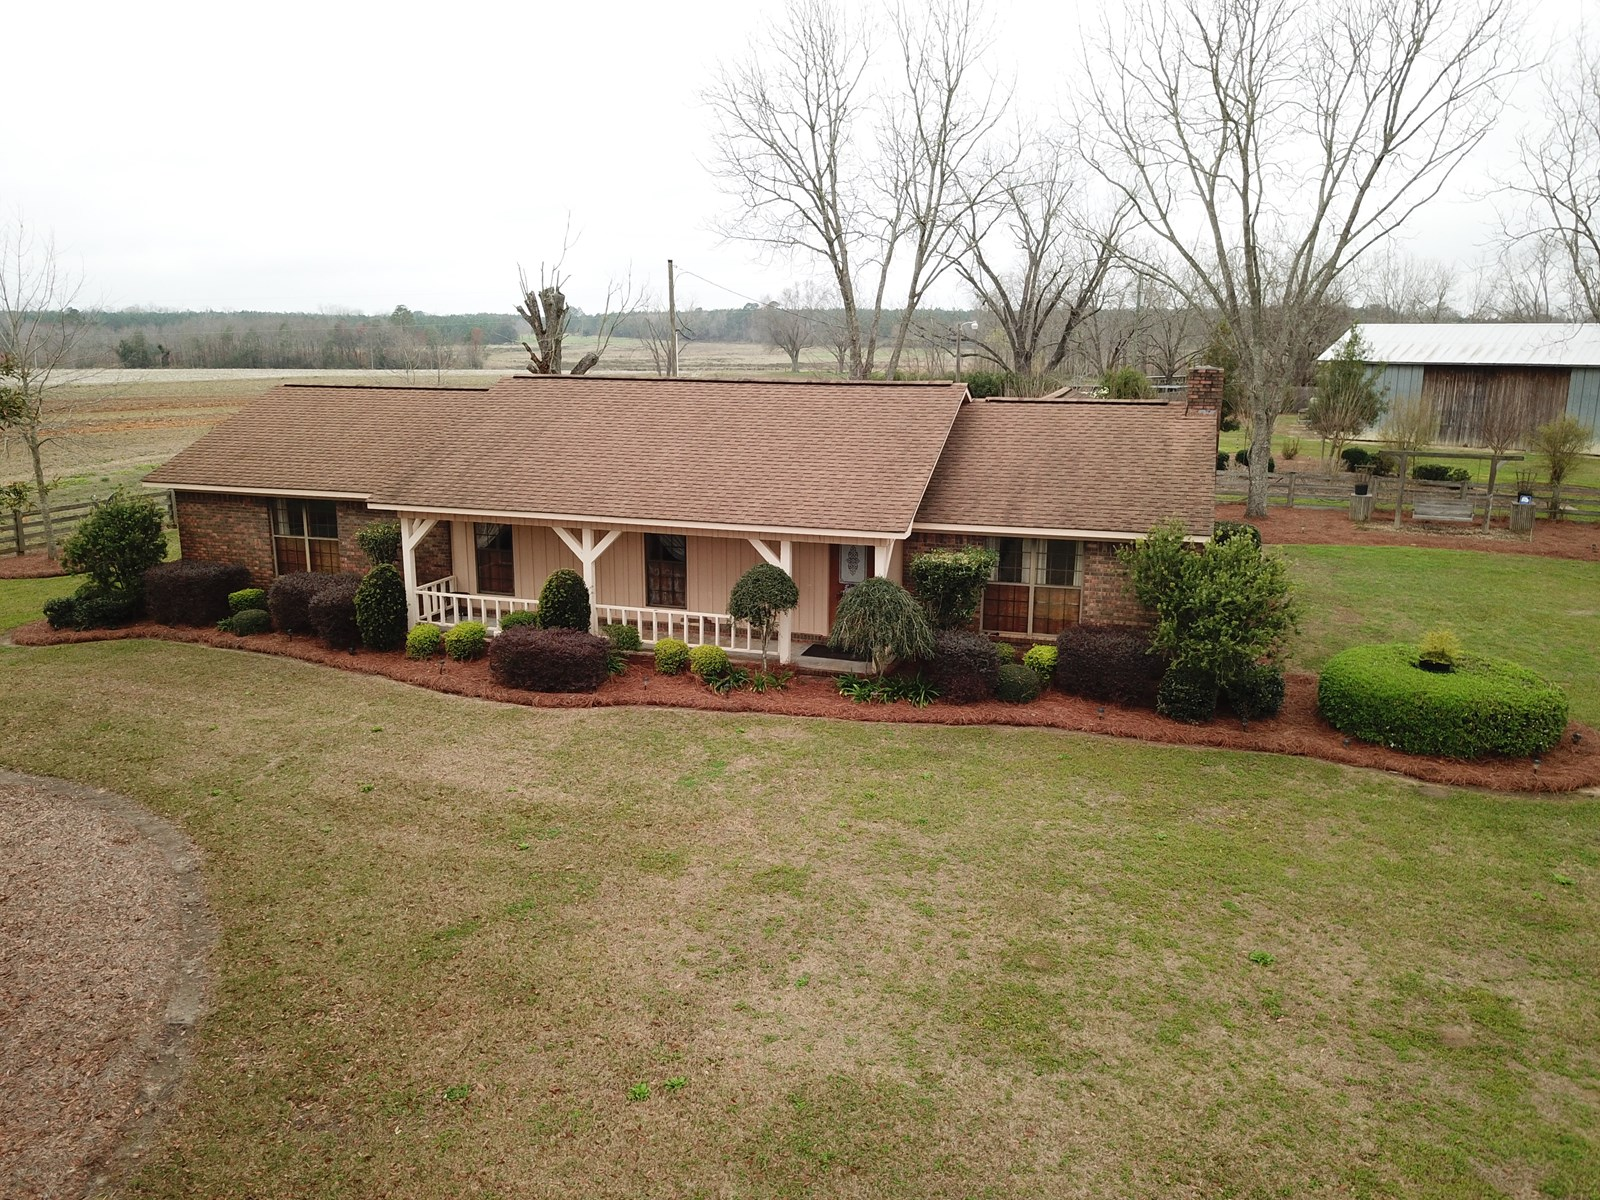 6 ACRES CROPLAND W FARM HOUSE FOR SALE IN SLOCOMB, ALABAMA